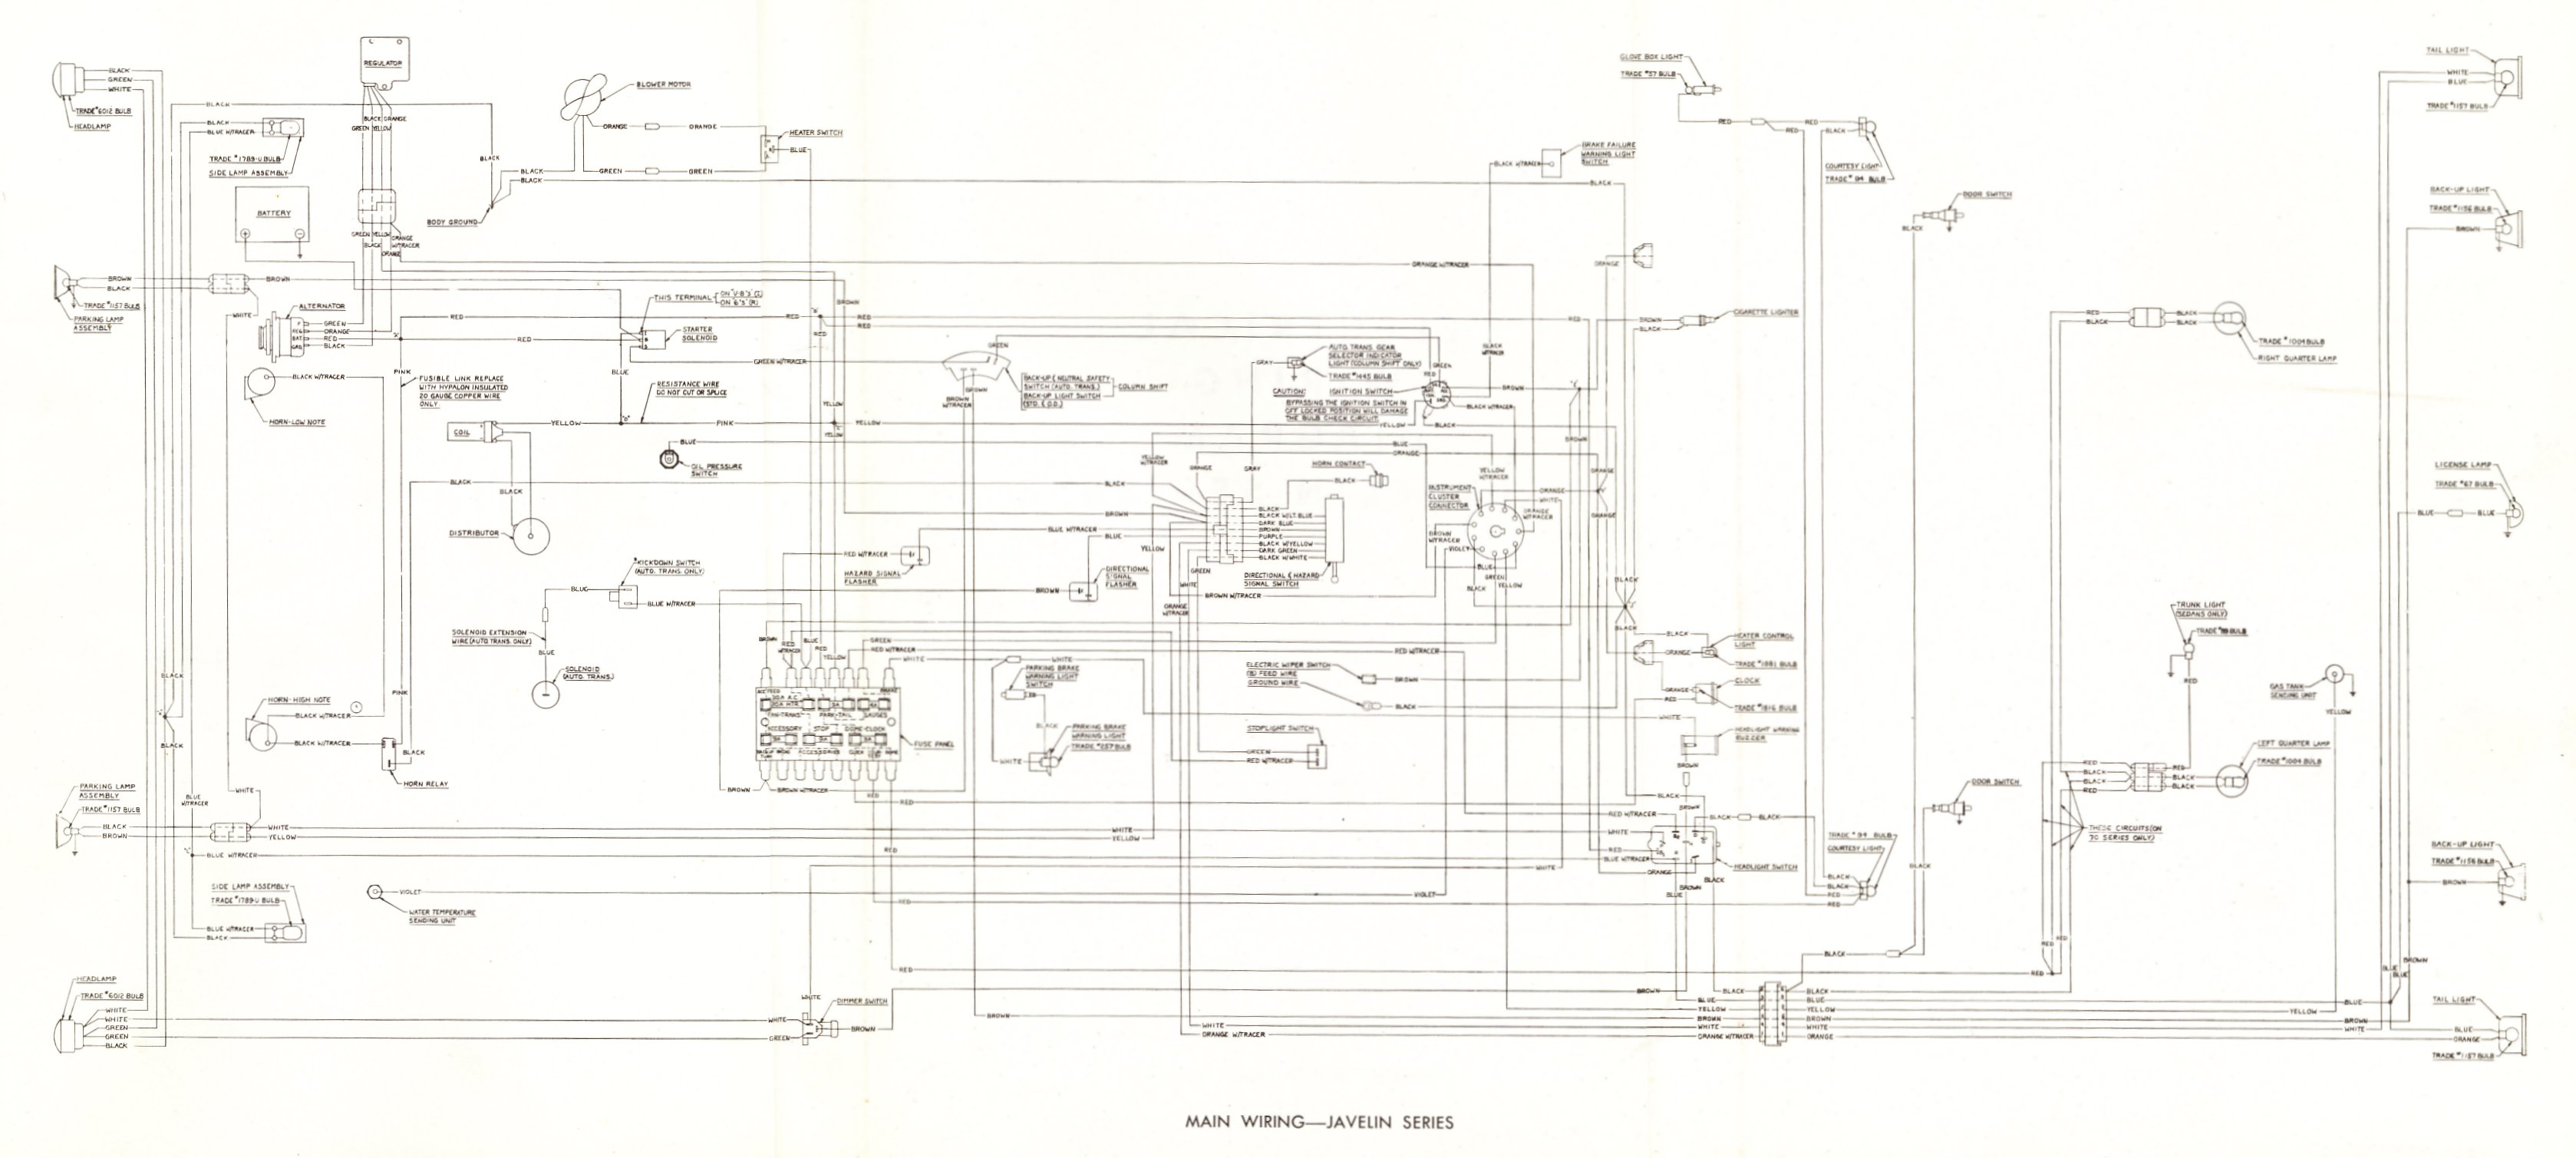 1968 Amc Amx Starter Wiring Diagram Just Another Blog Rebel Experience Of U2022 Rh Colregs Pro Javelin Diagrams For